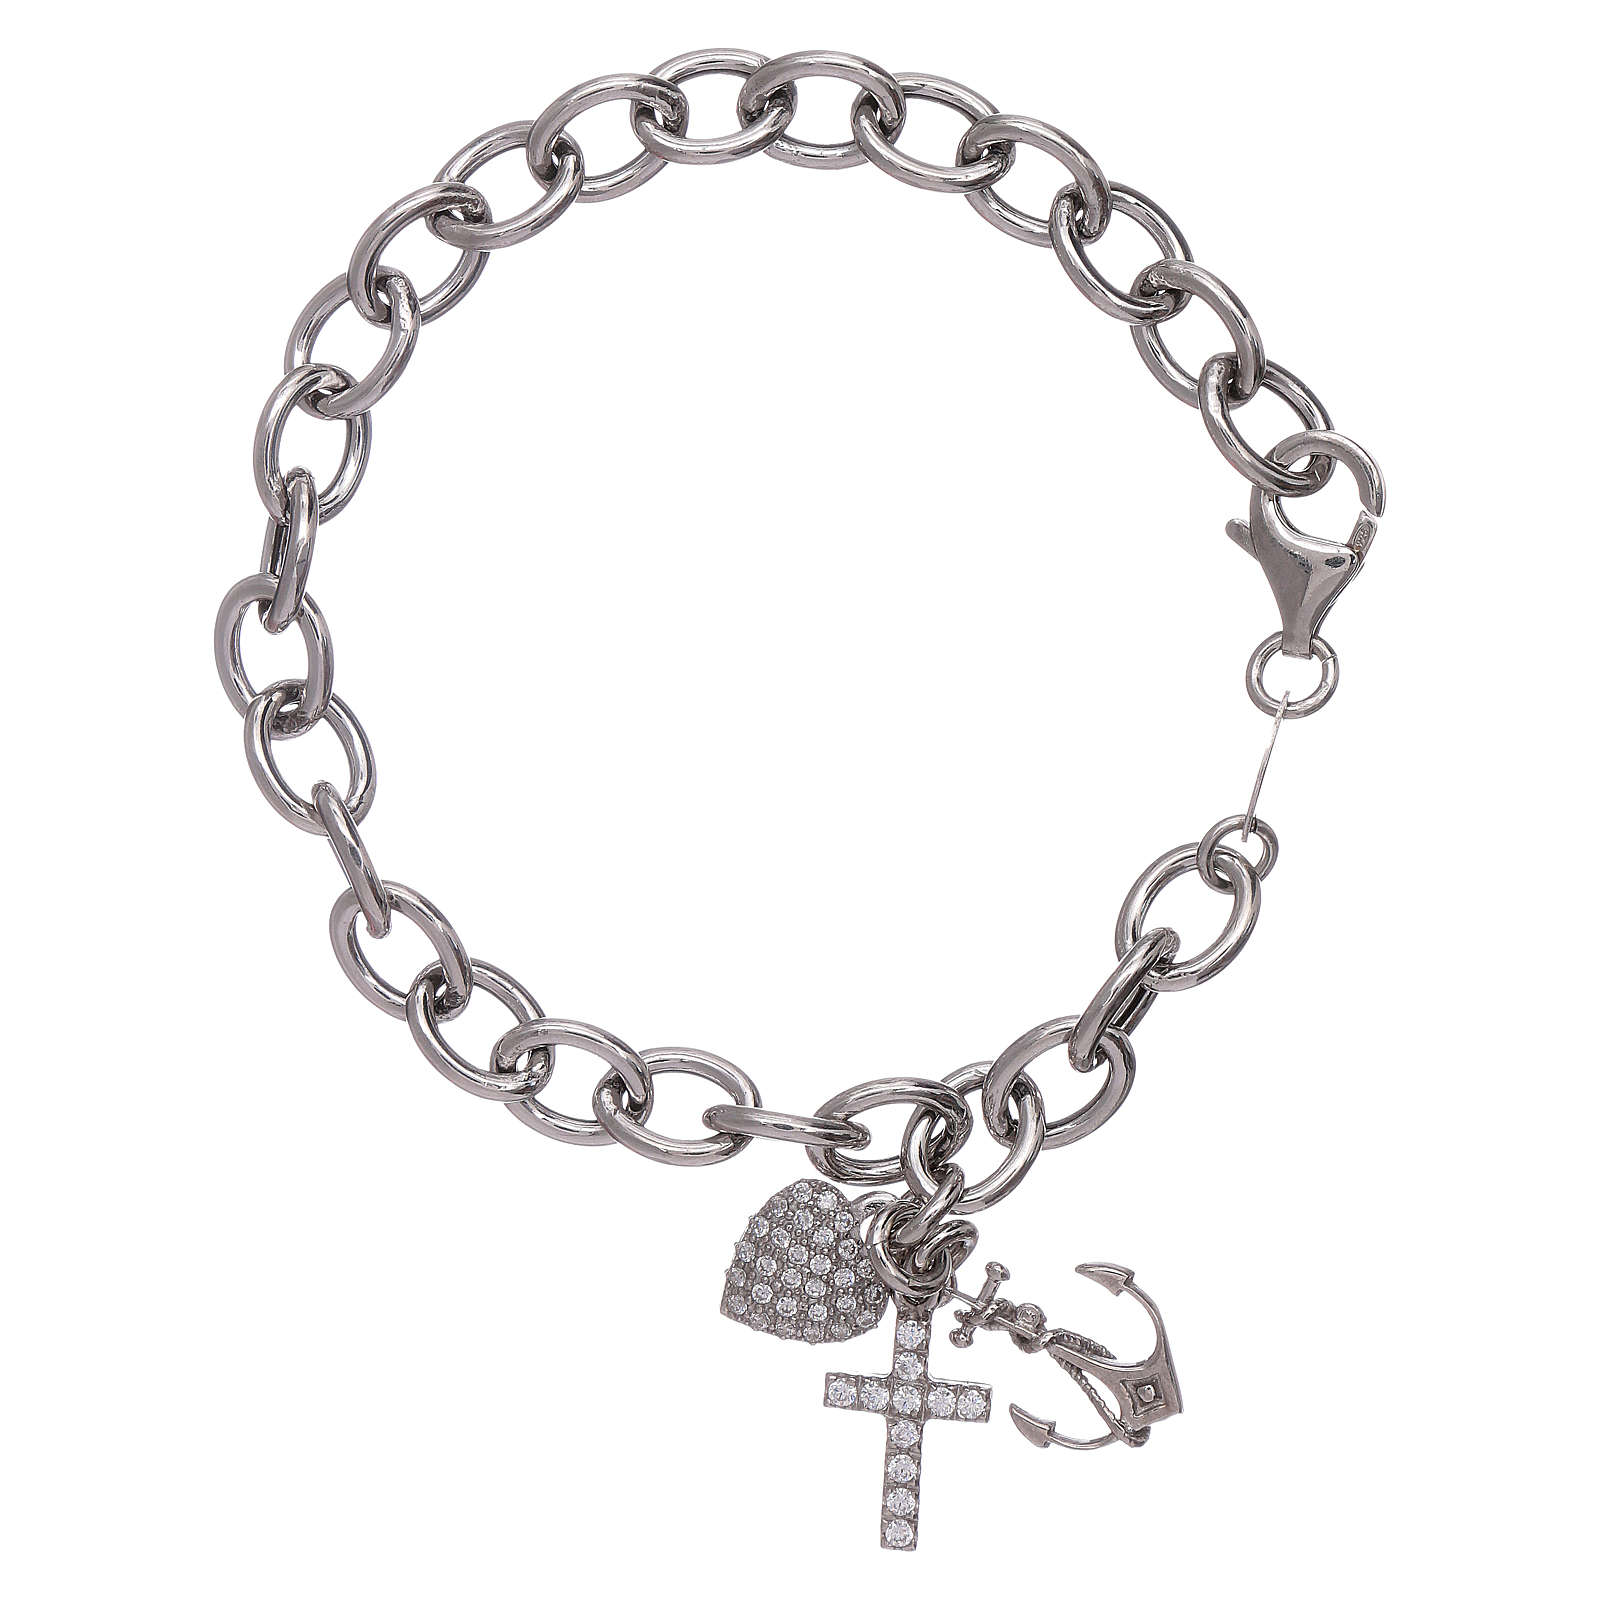 AMEN 925 sterling silver bracelet with zircons Faith, Hope and Charity 4